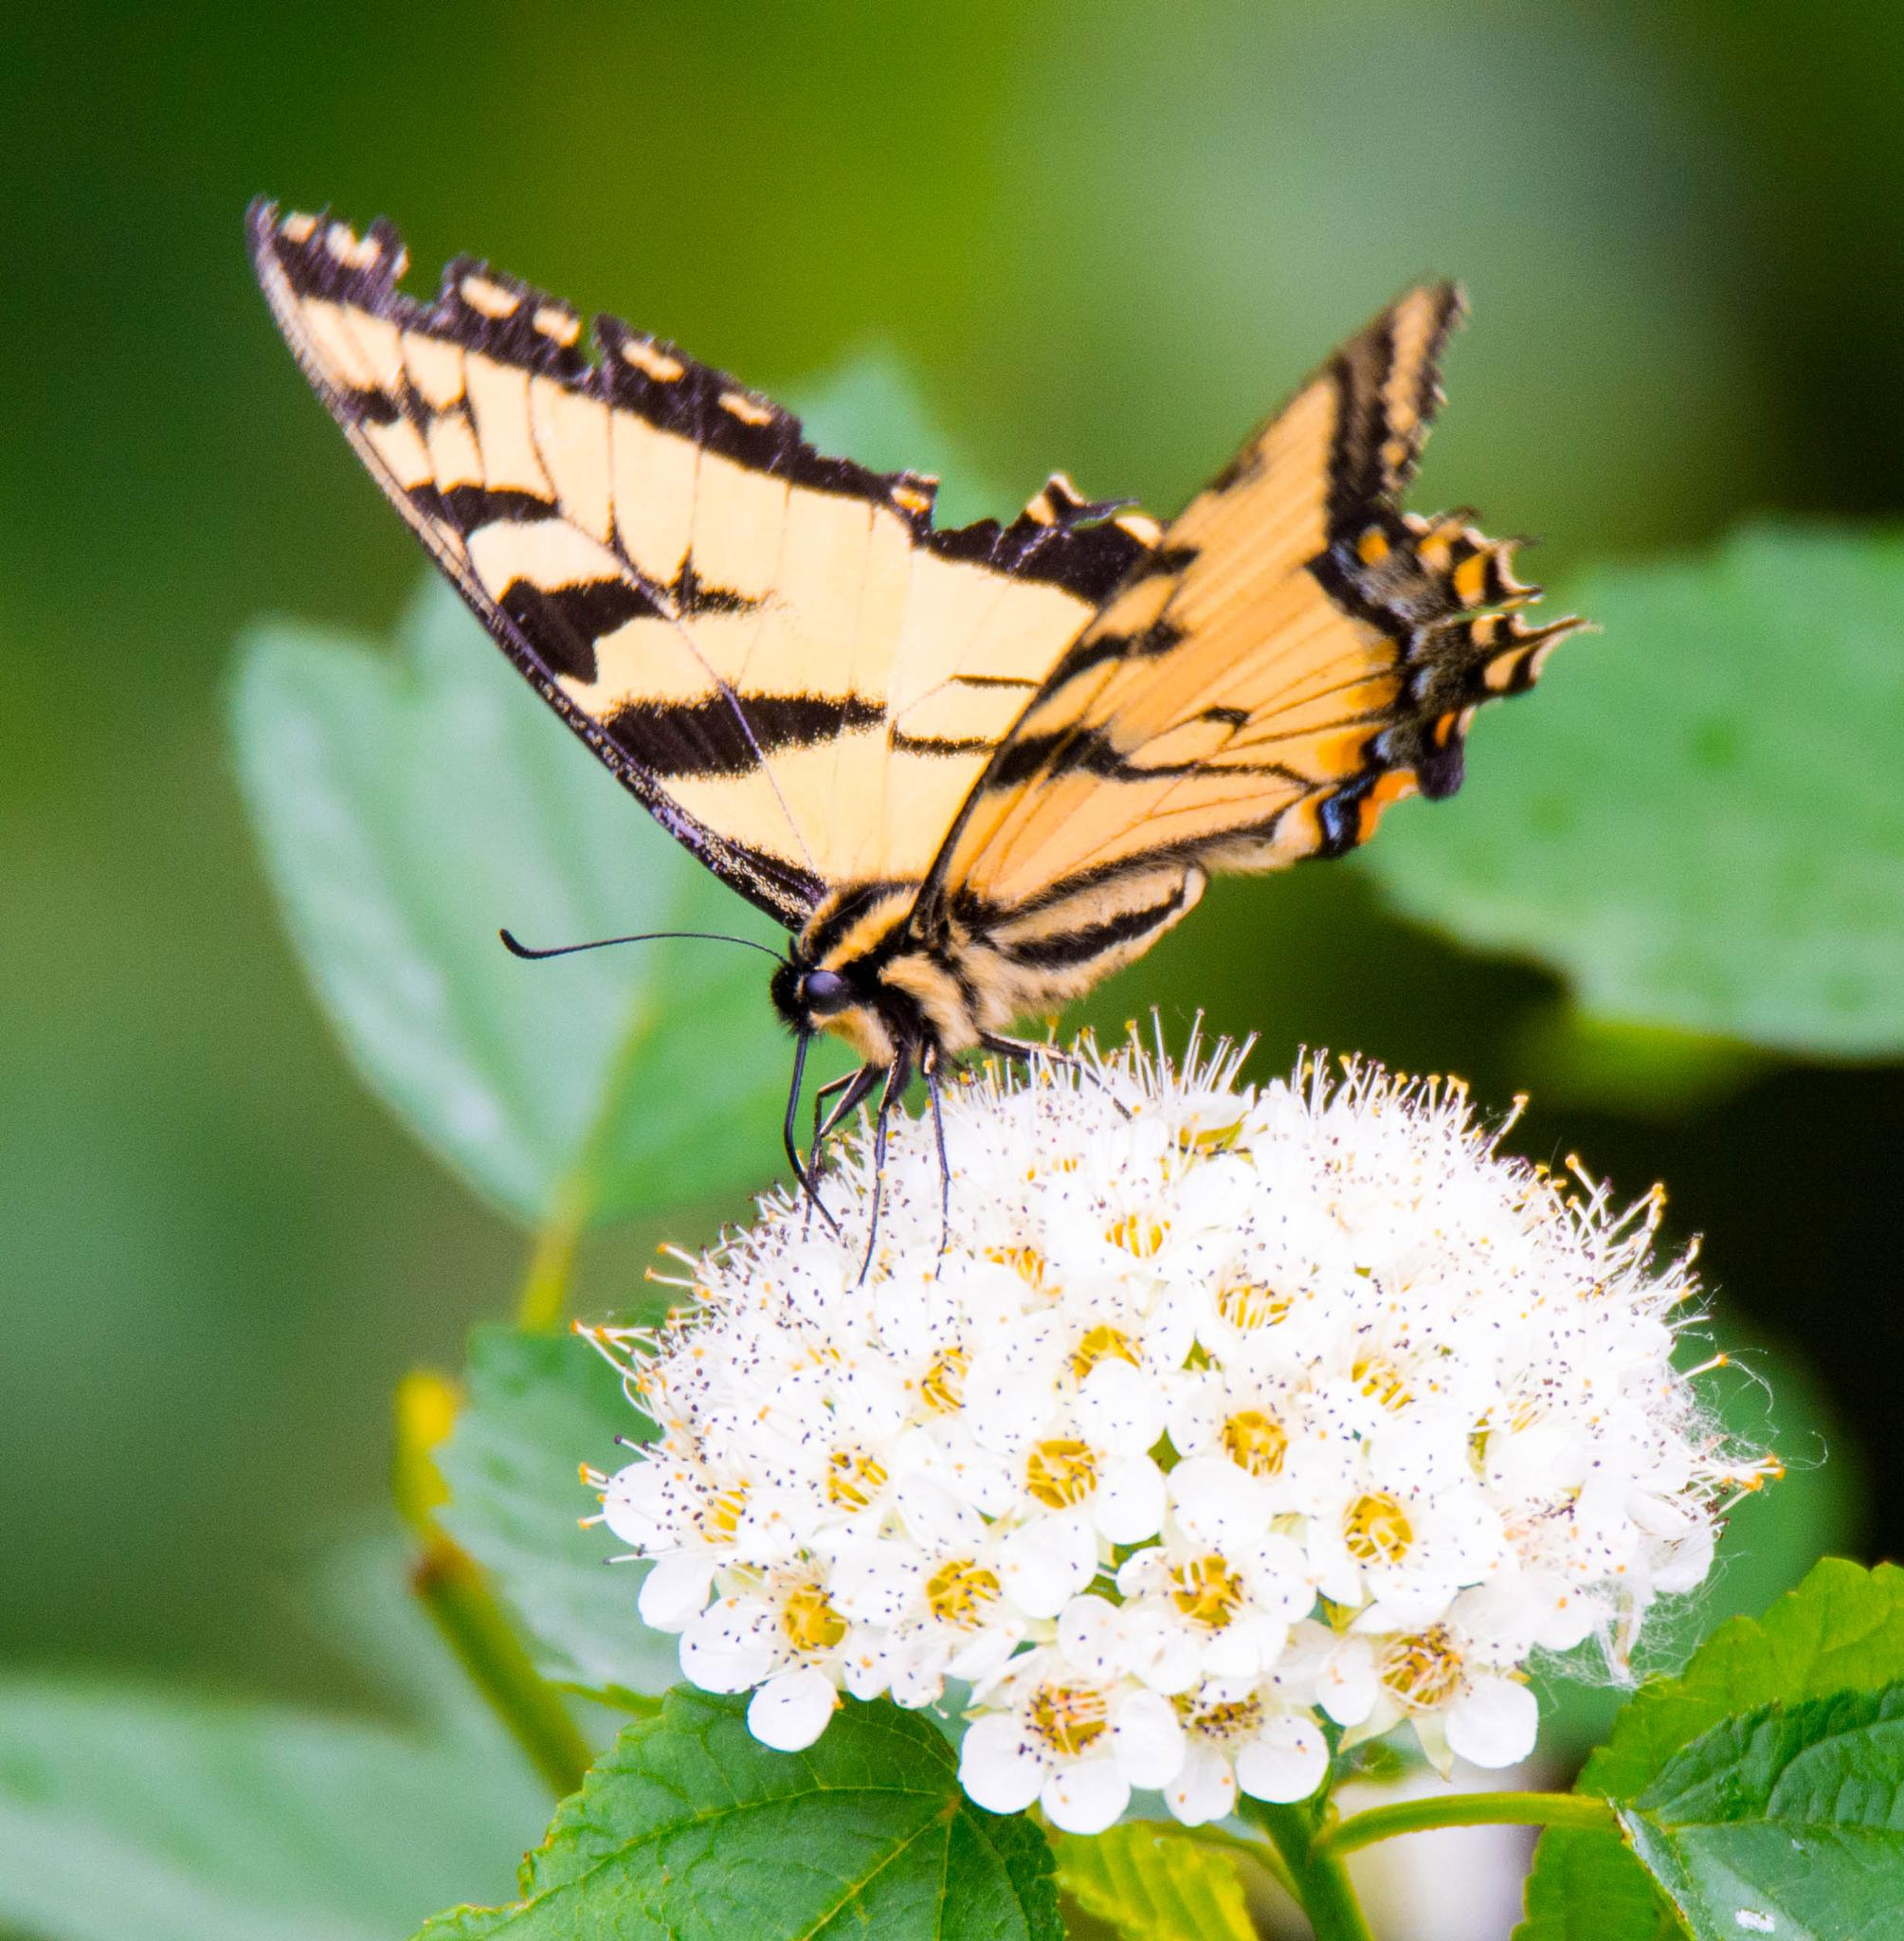 Swallowtail on a single Tree blossom  by Wilma Michel